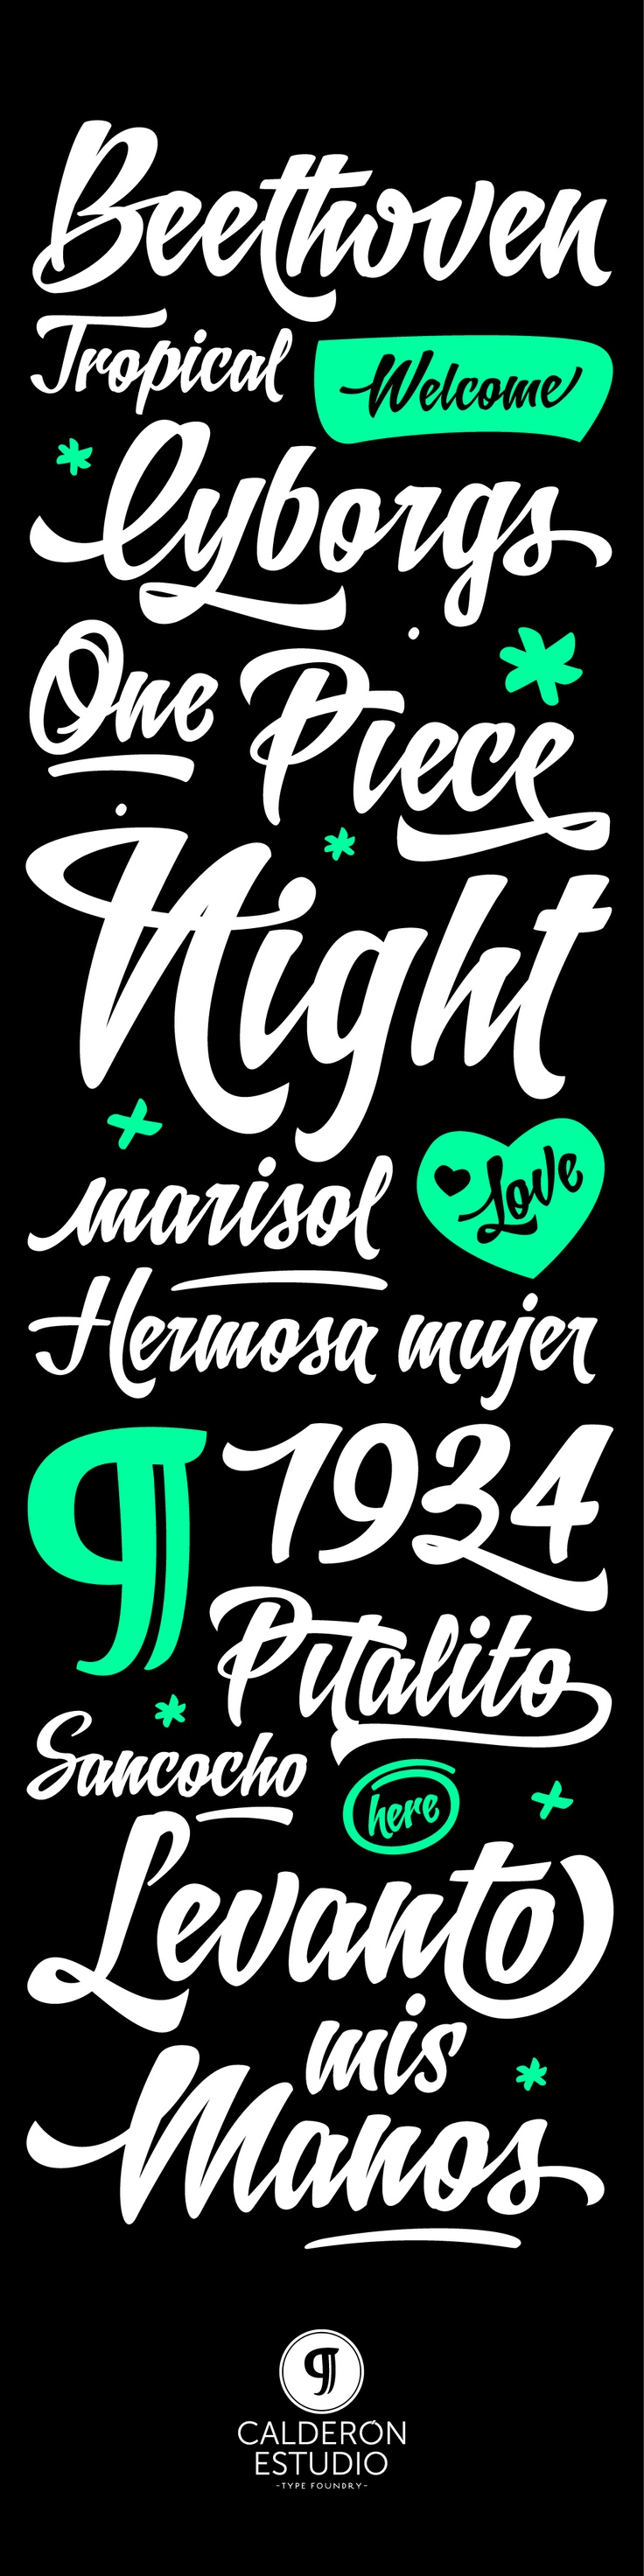 Check out new work @myfonts http://www.myfonts.com/fonts/calderon-estudio-type-foundry/letrista-script/